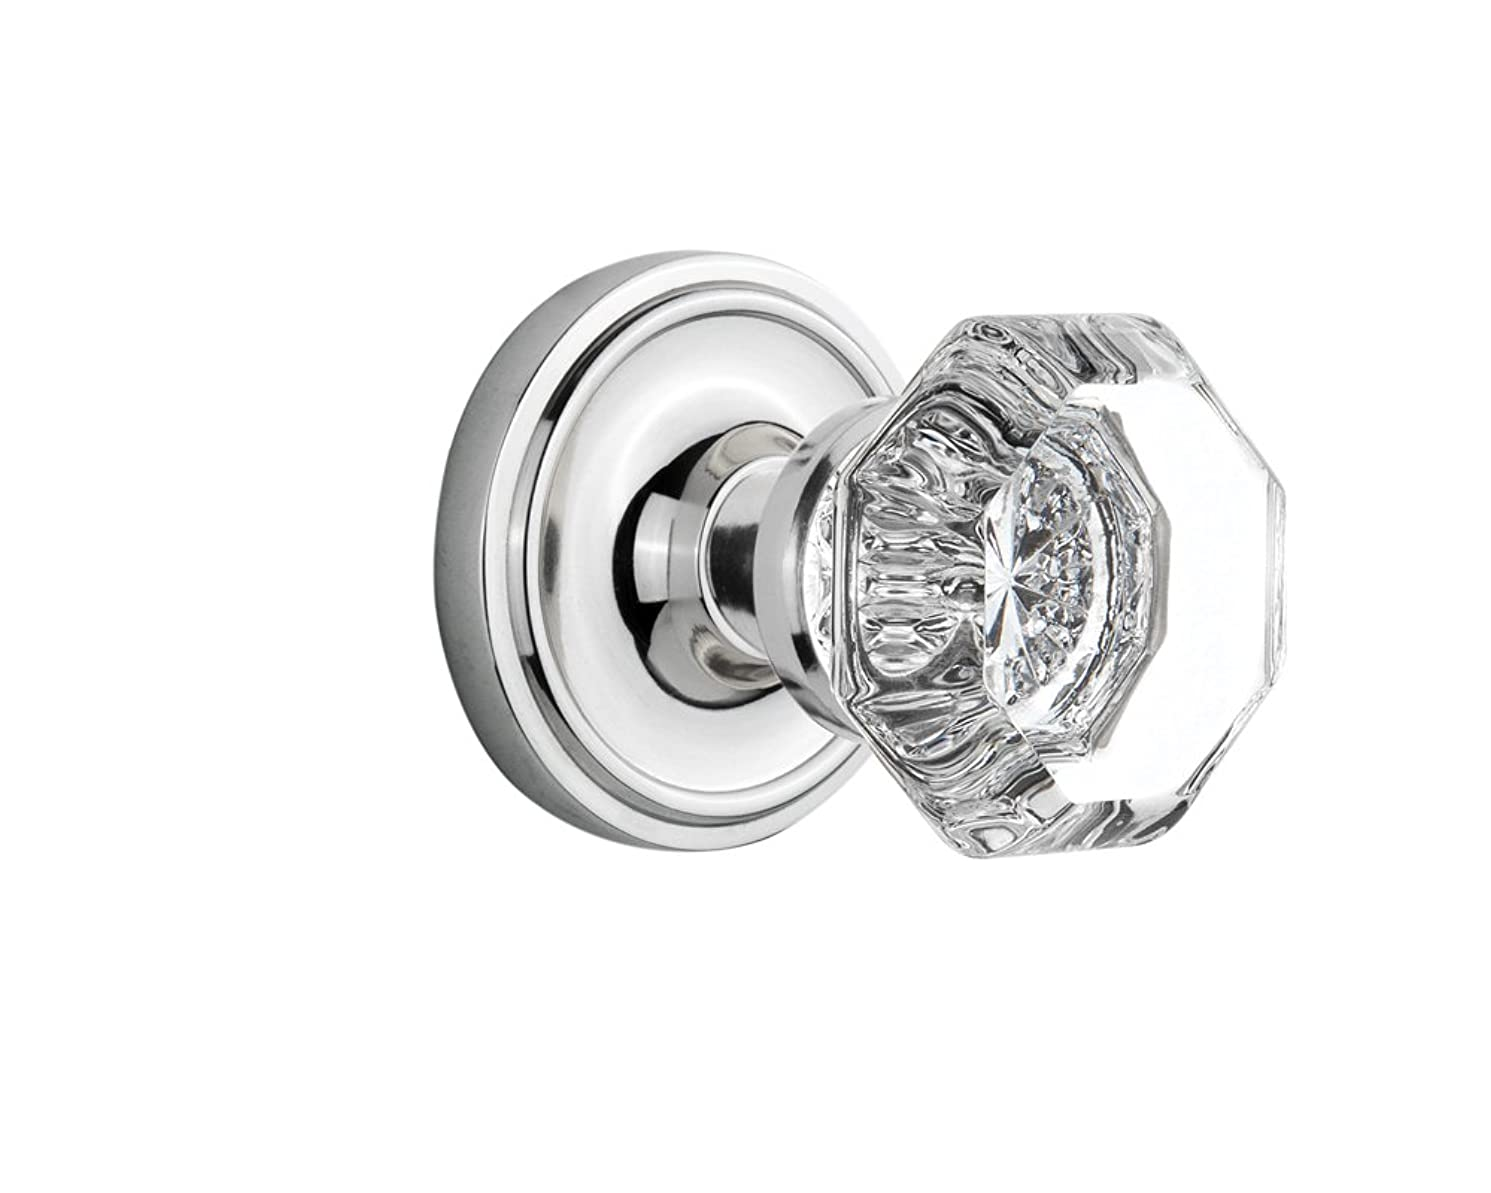 Nostalgic Warehouse Classic Rosette with Waldorf Crystal Door Knob, Double Dummy, Bright Chrome